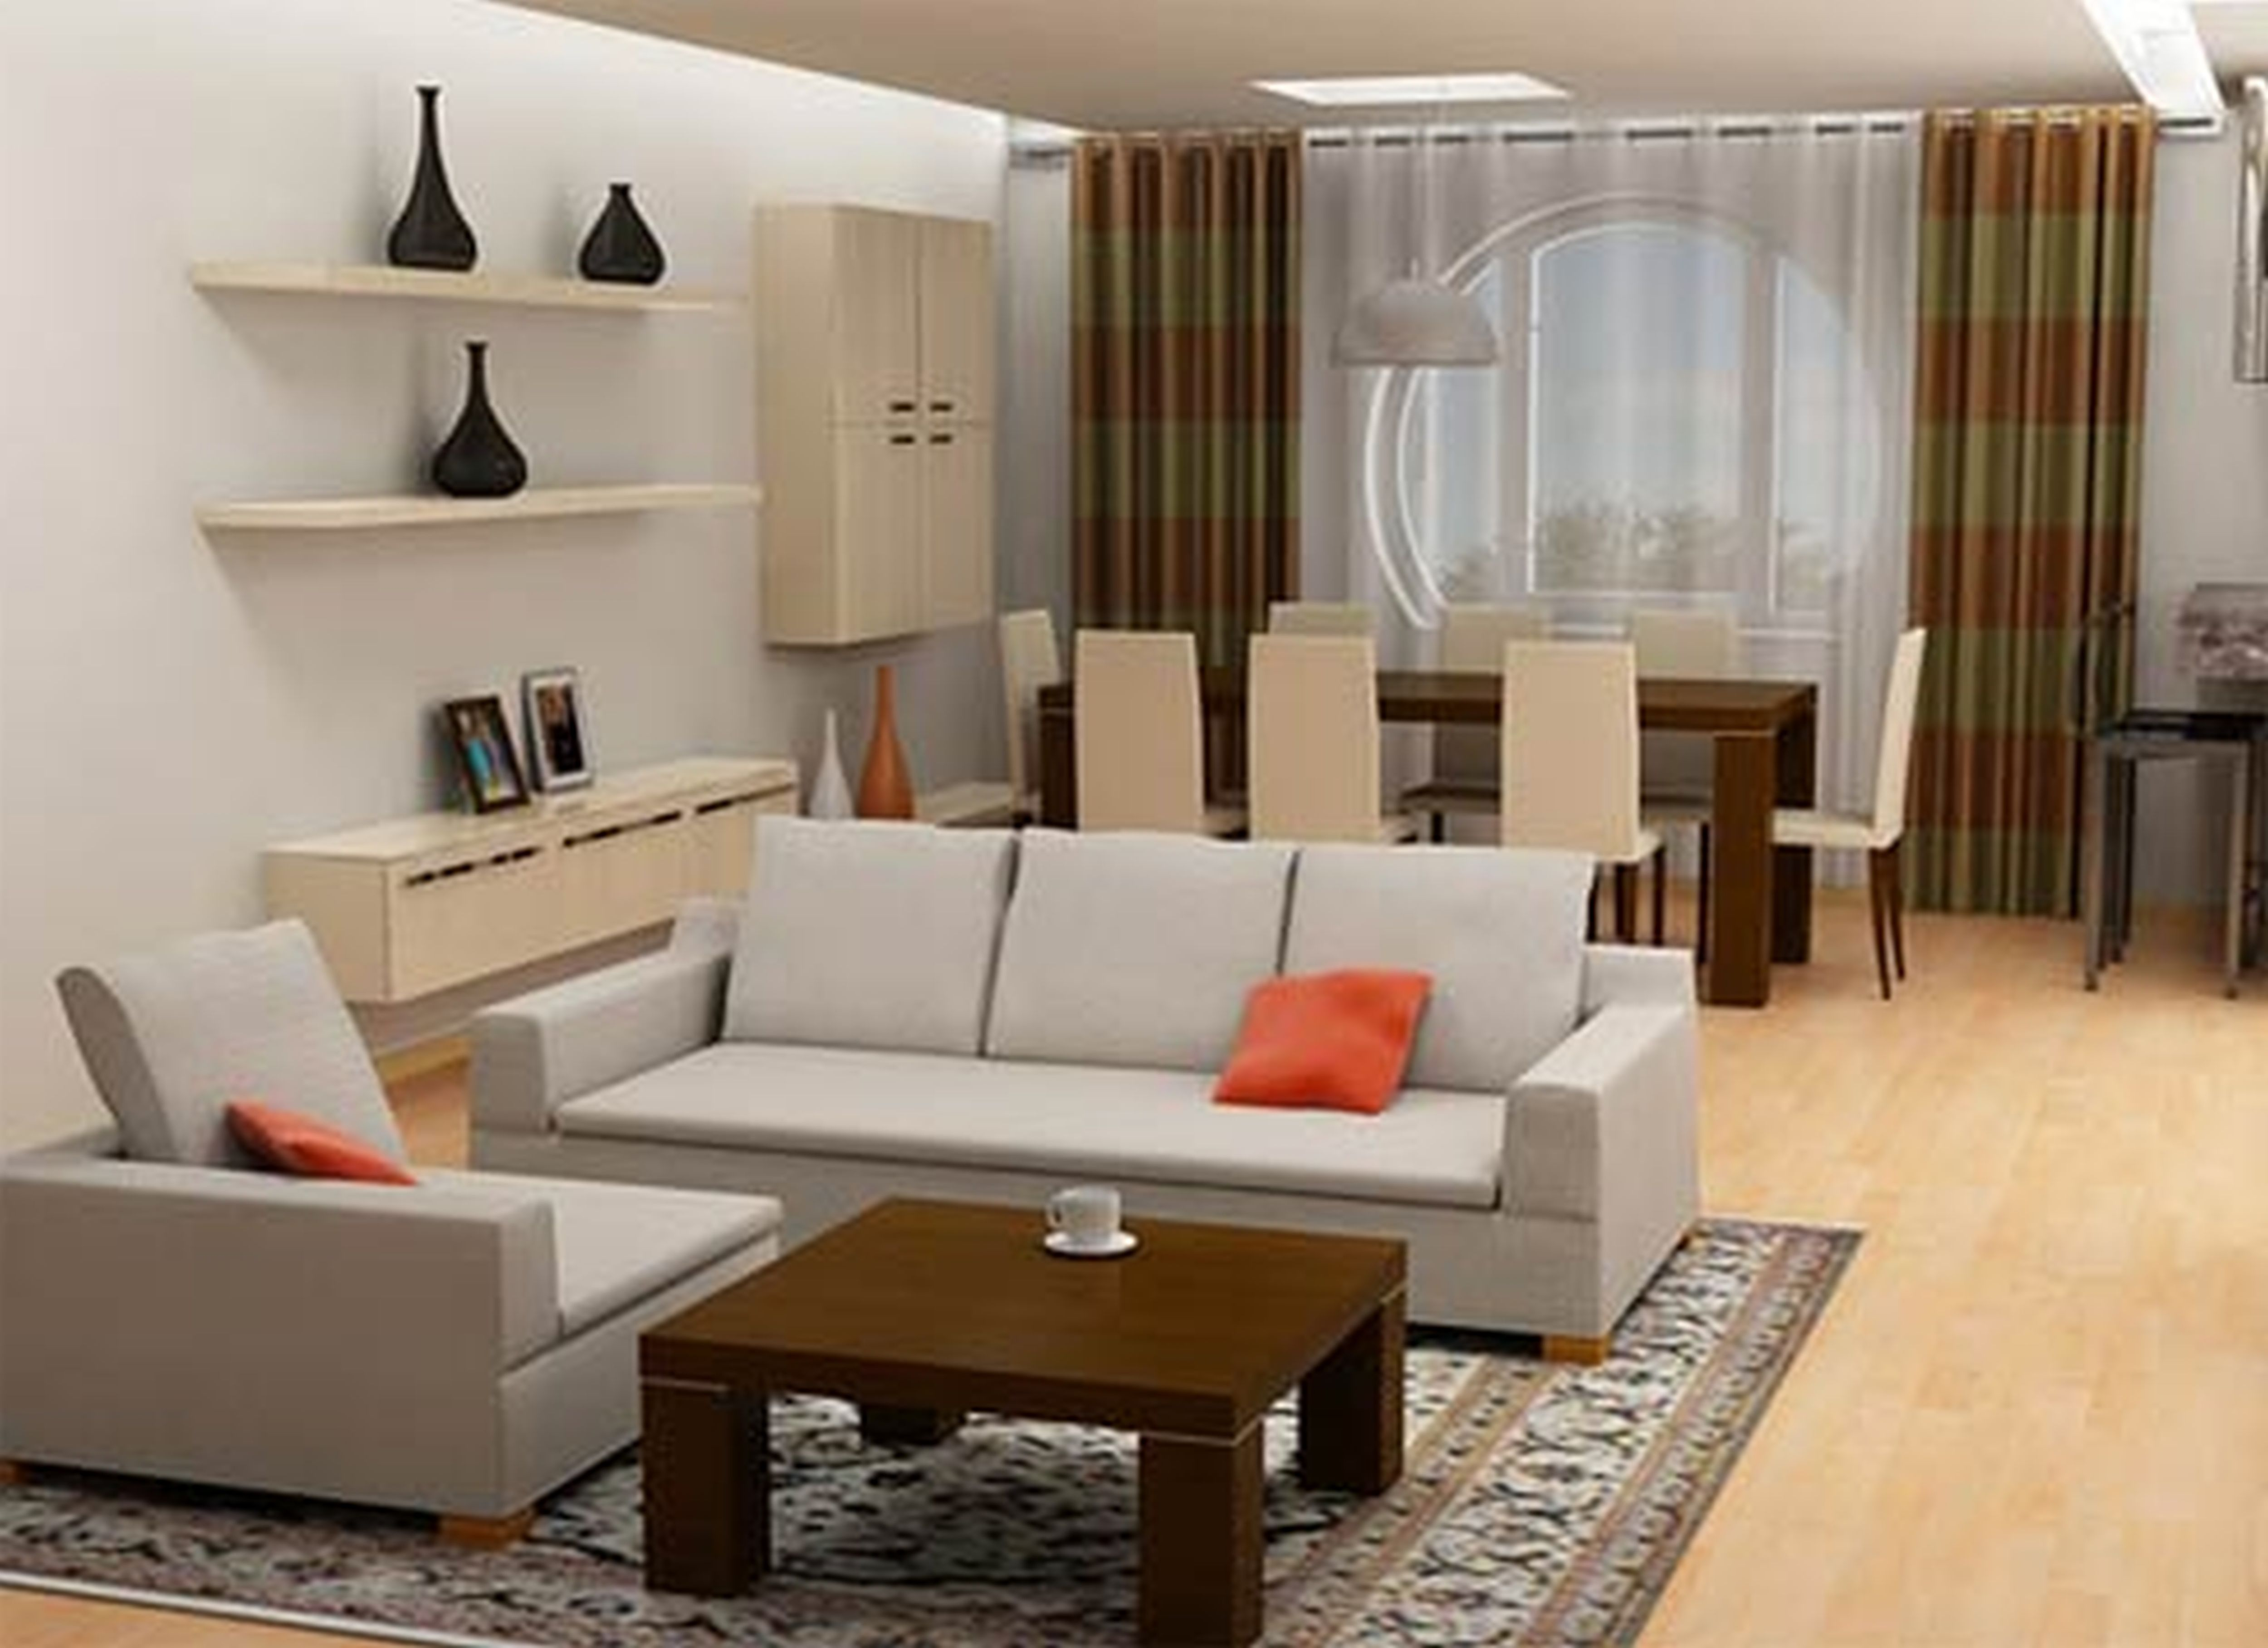 Small Living Room Interior Design small living room ideas with modern design | decoration designs guide